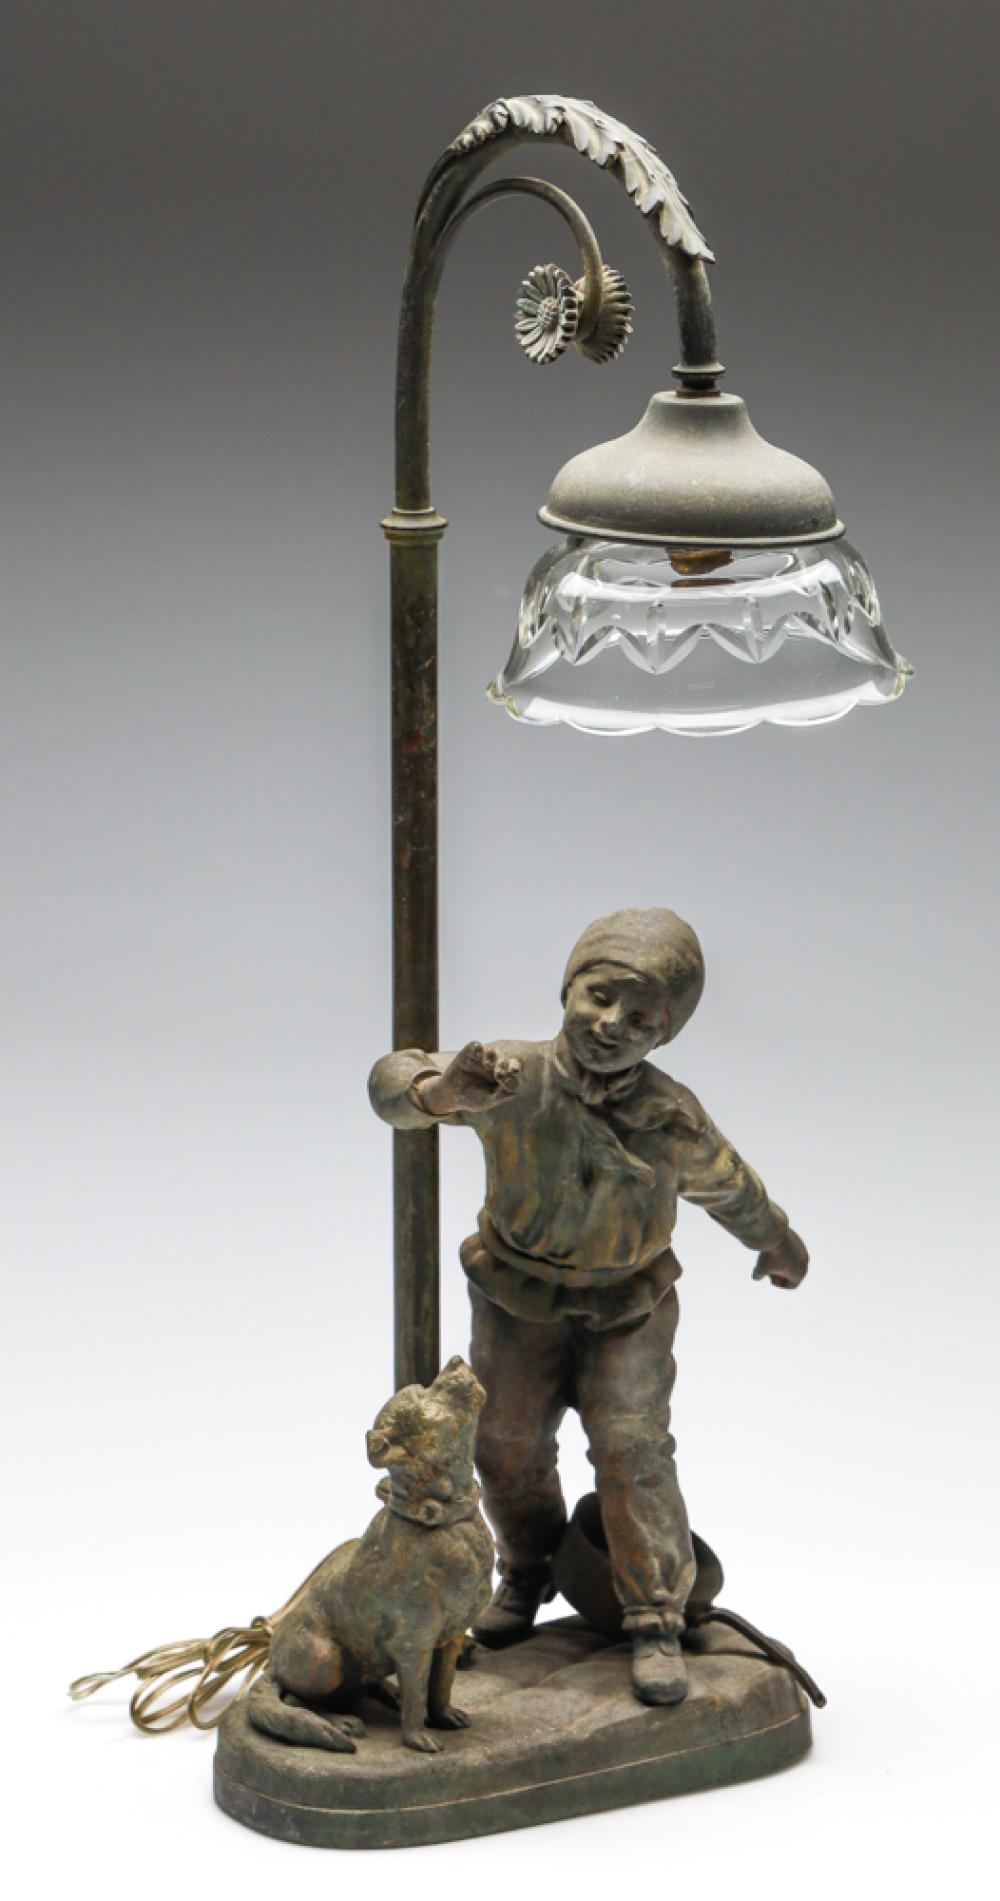 A Figural French Spelter Lamp of a Boy and Dog with Cut Glass Shade (H:50cm)